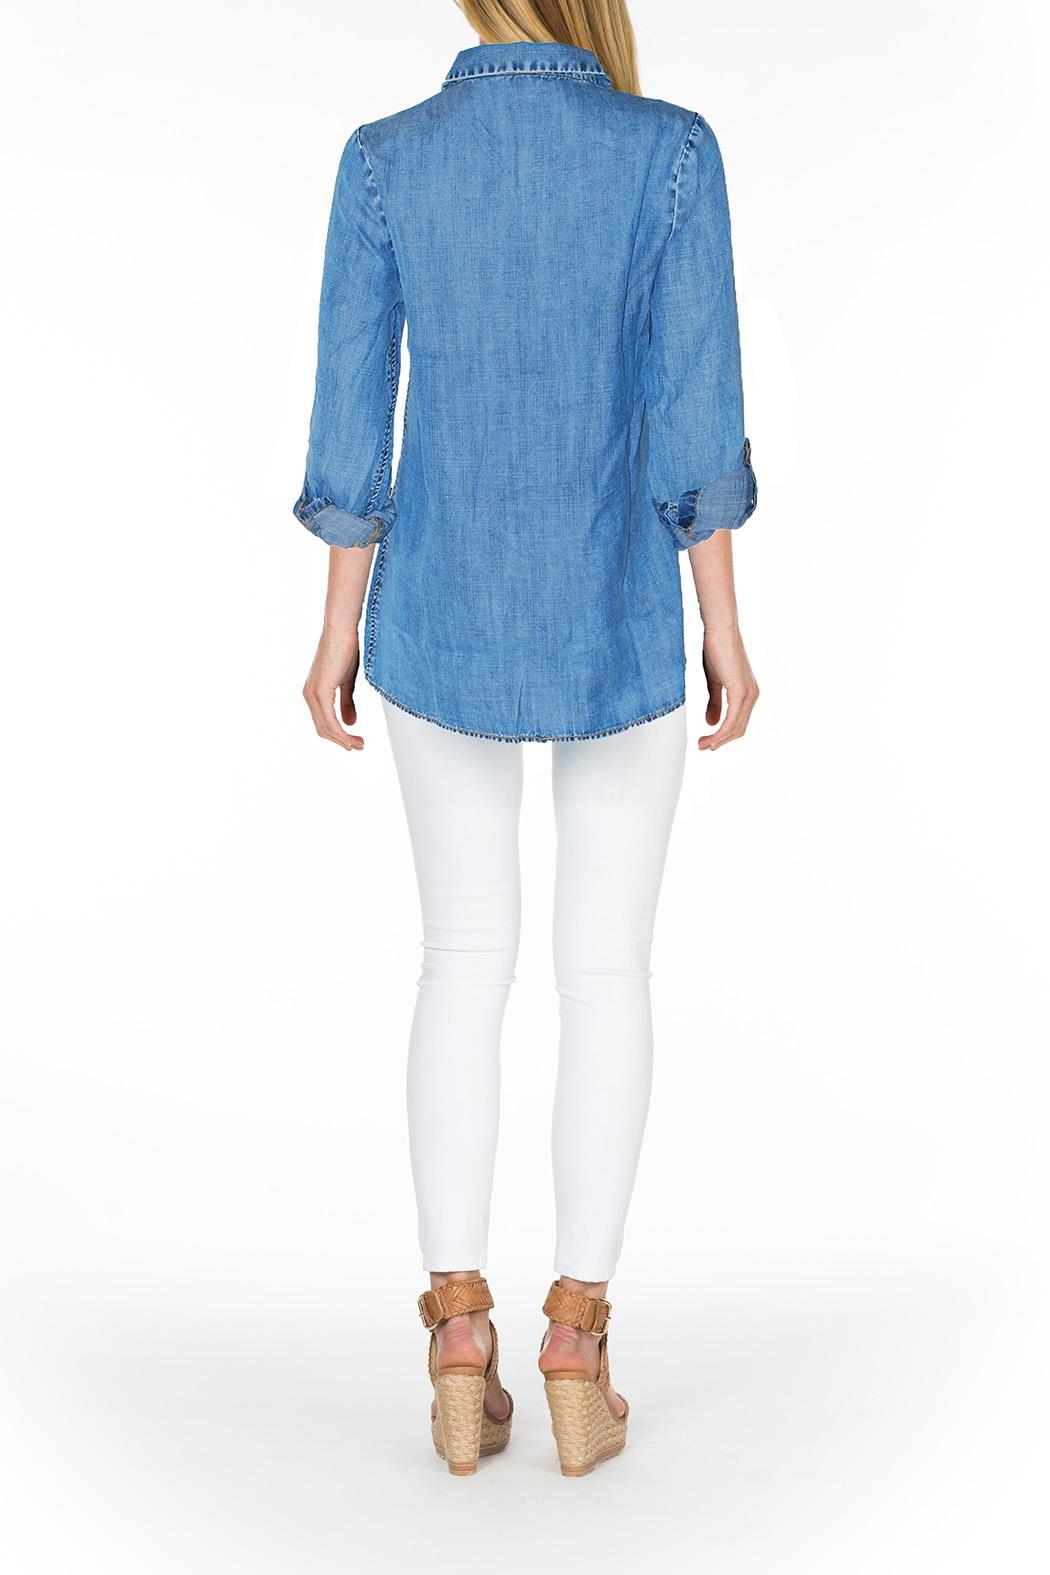 Tolani Embroidered Chambray Tunic - Front Full Image